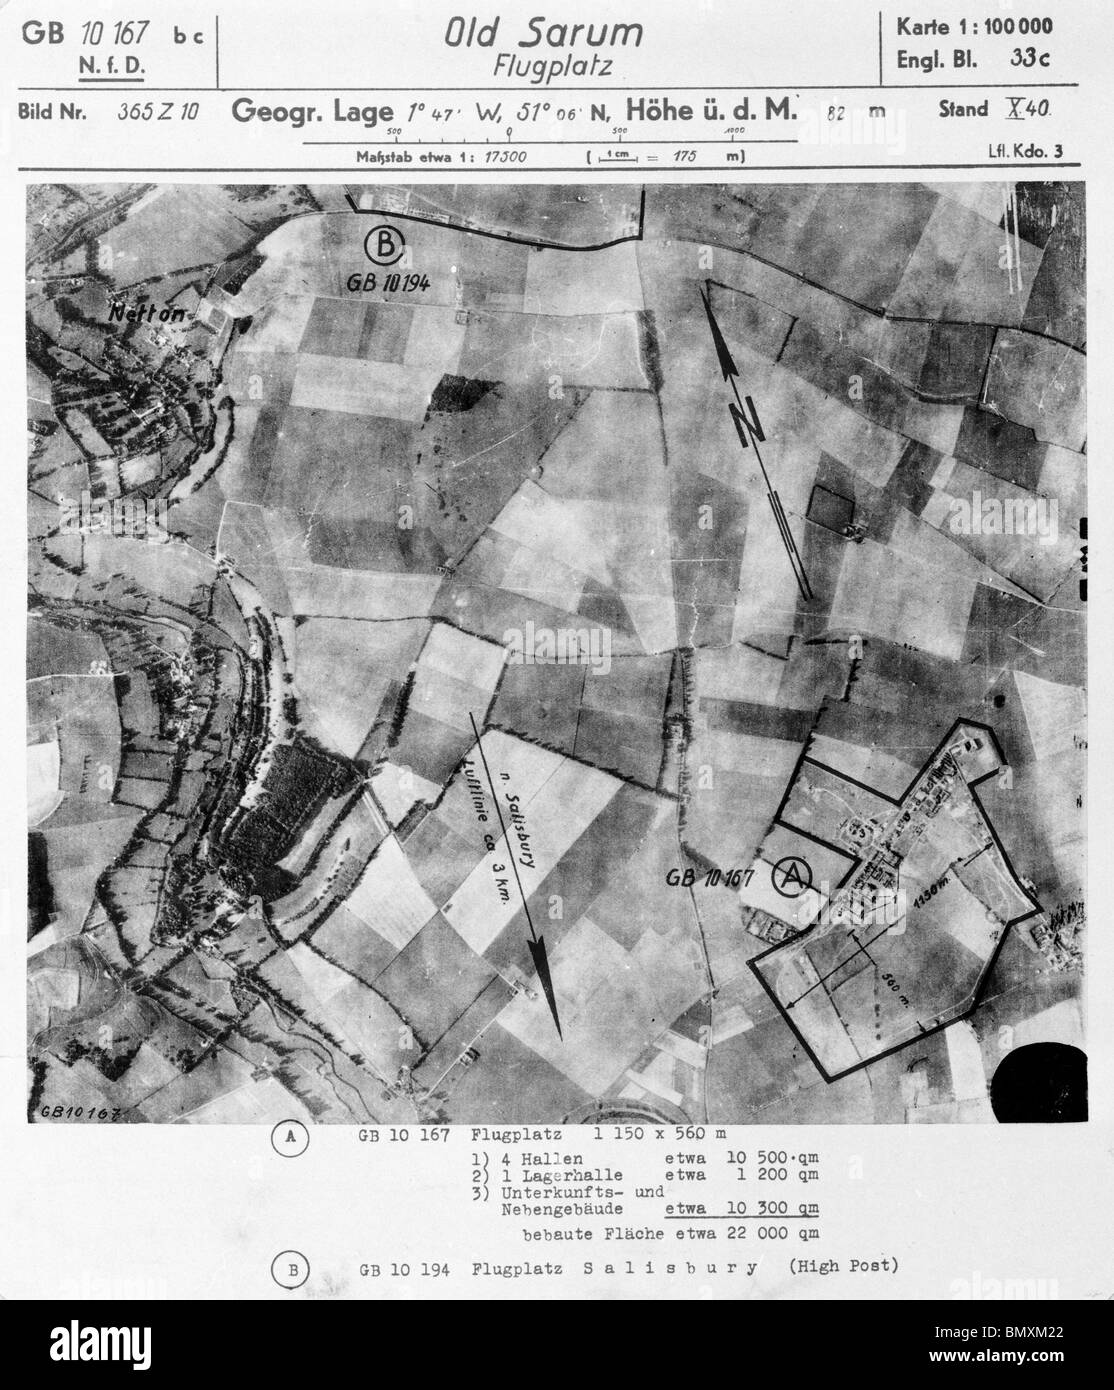 Old Sarum - Wiltshire 1st October 1940 Airfield Stock Photo